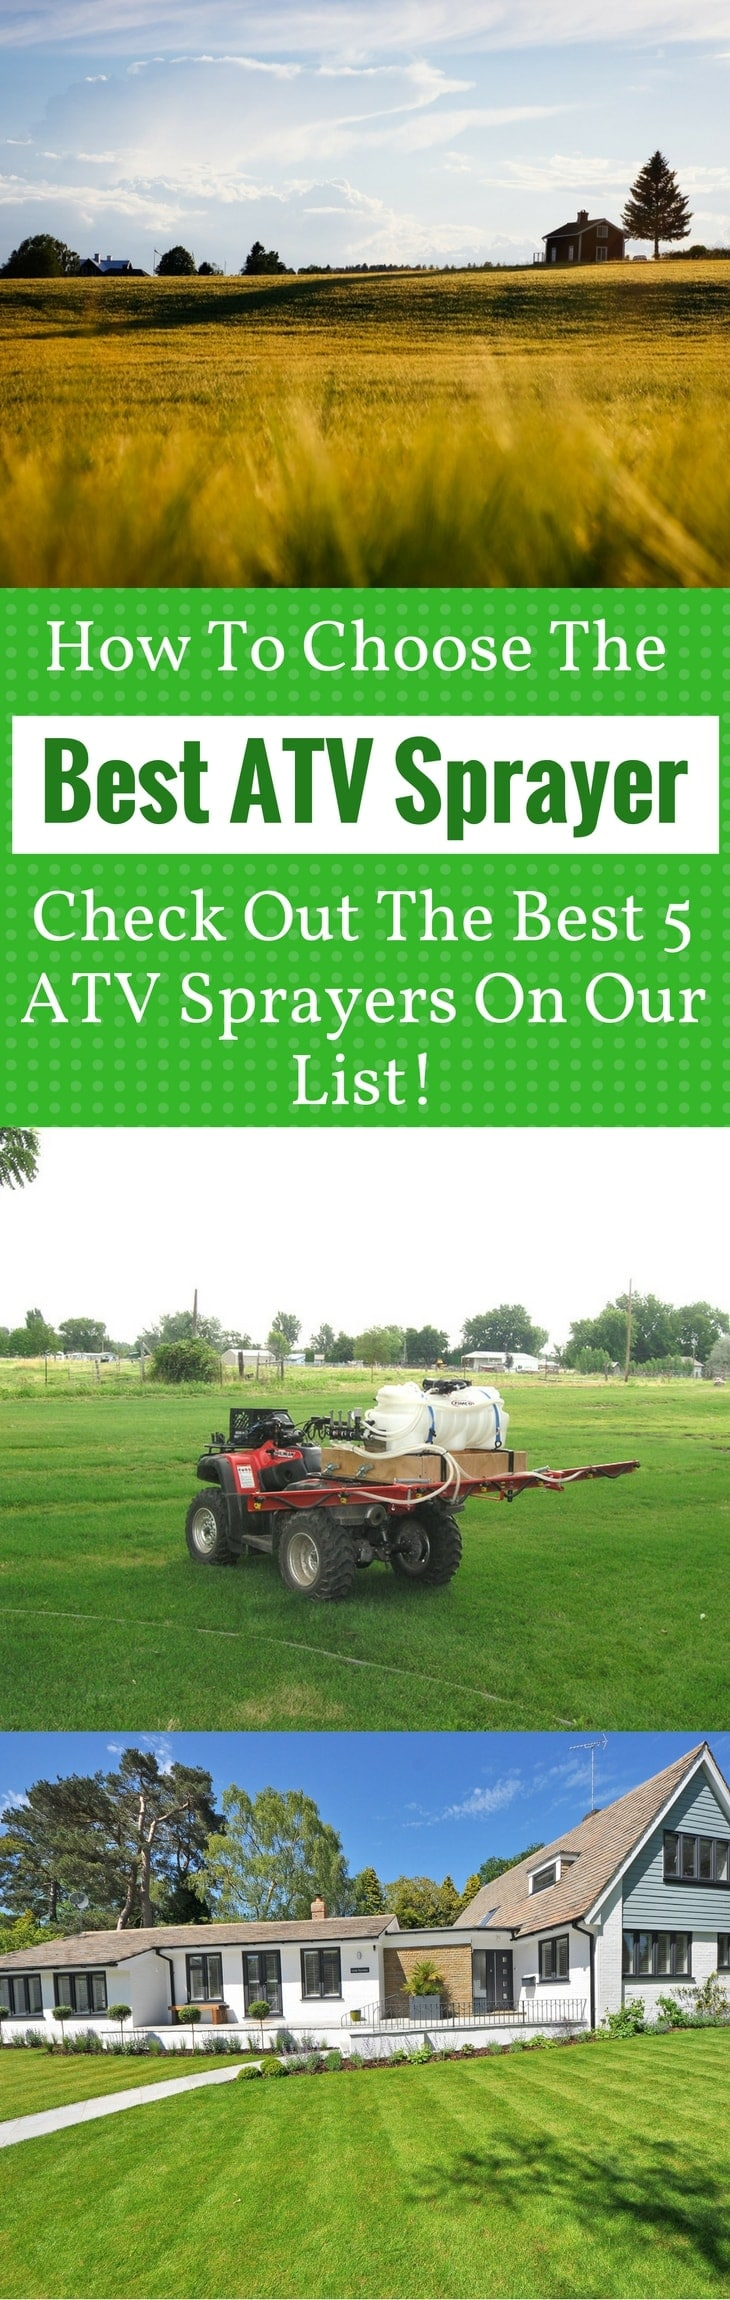 Best ATV Sprayer pin it1